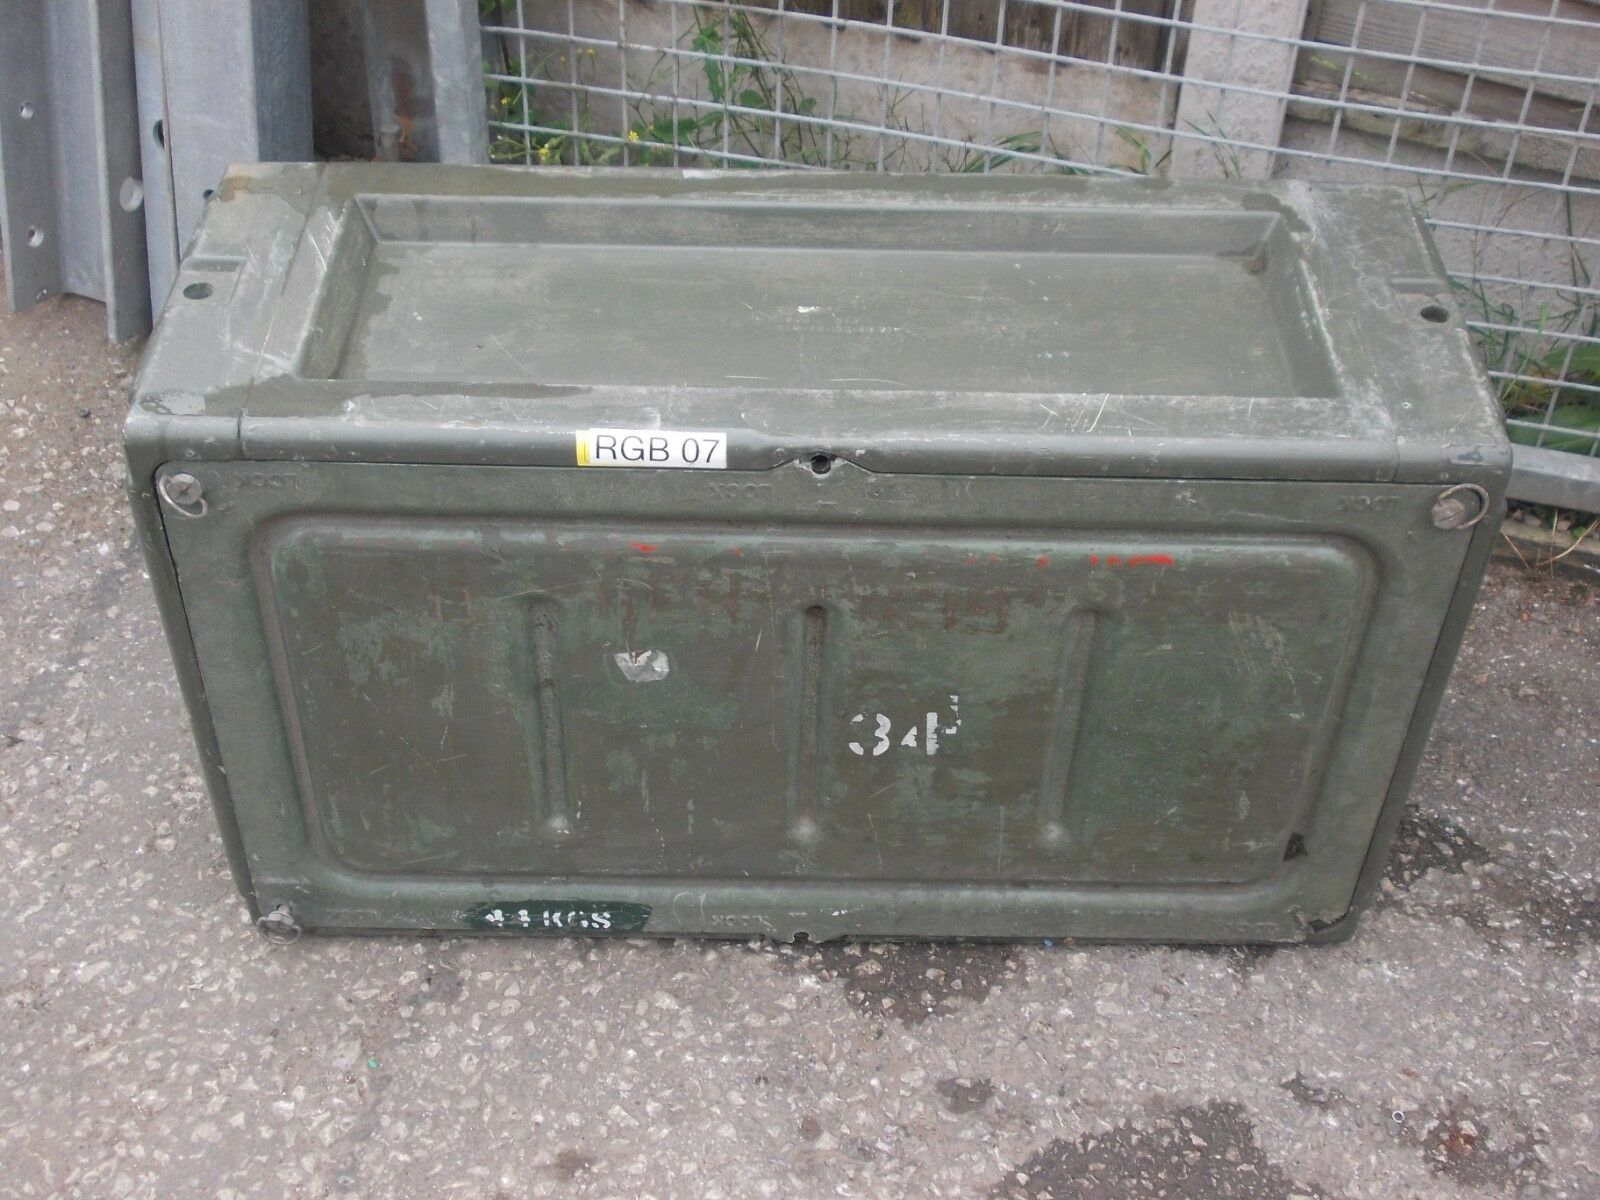 Large MilitaryStorage Container - Used - Army Green With Shelving